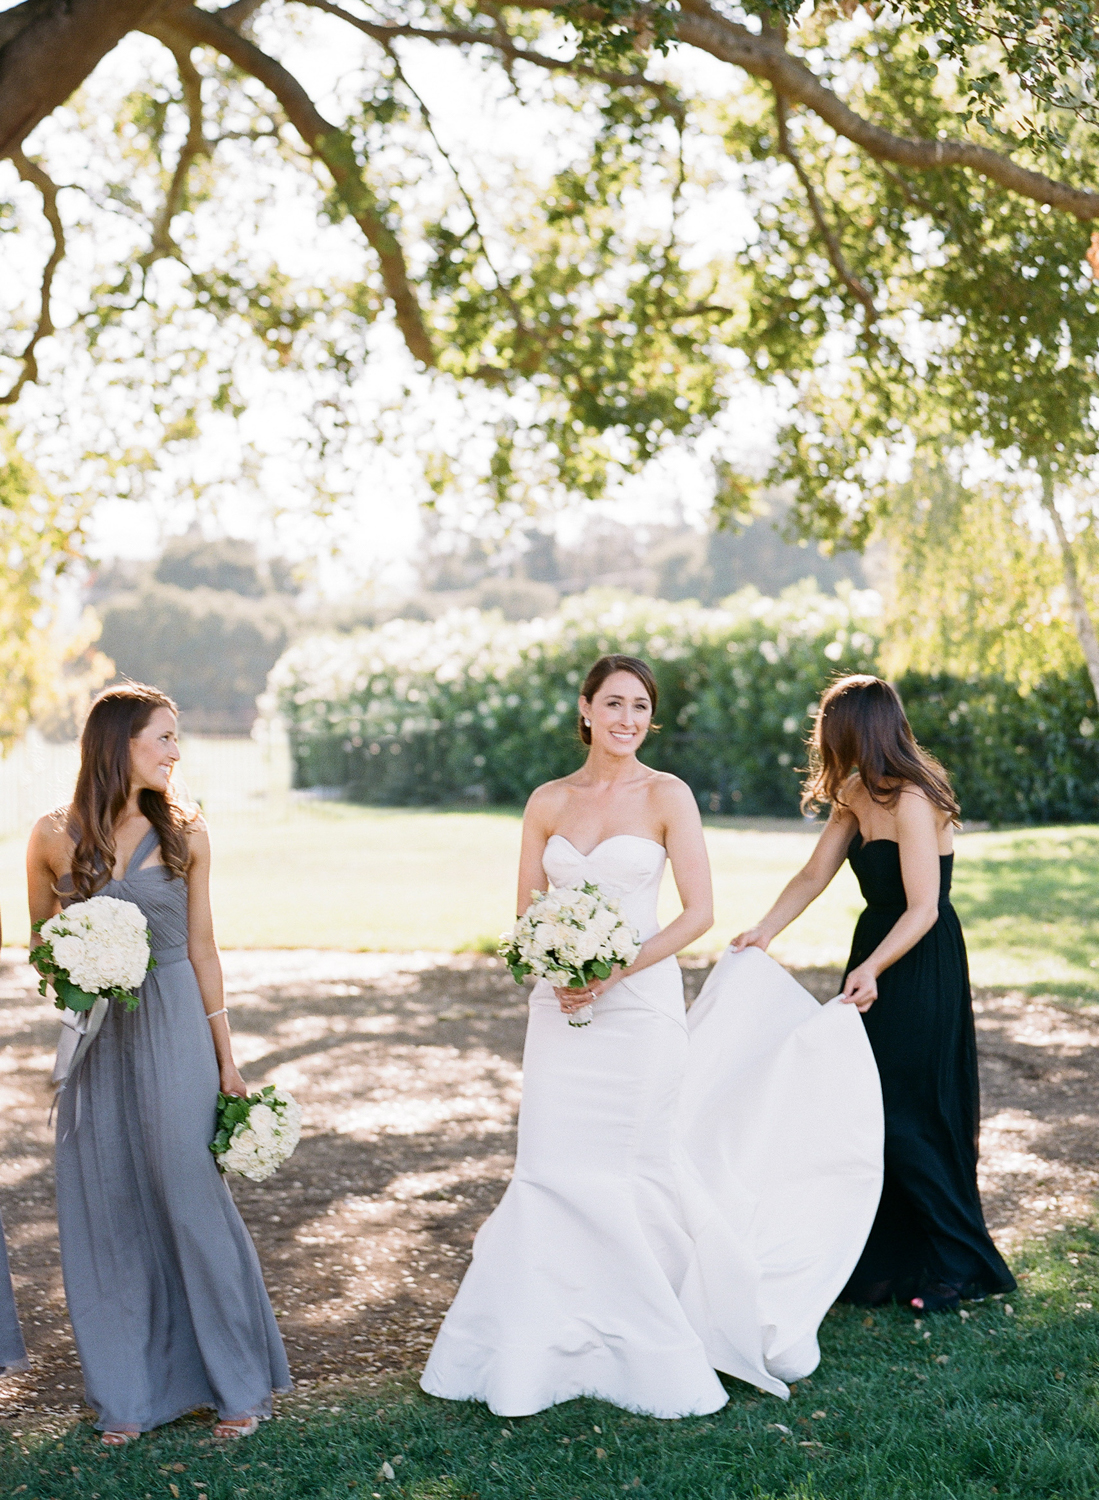 Bridesmaids in a range of navy, black, and gray gowns help with the train of the bride's Oscar de la Renta wedding gown; photo by Sylvie Gil